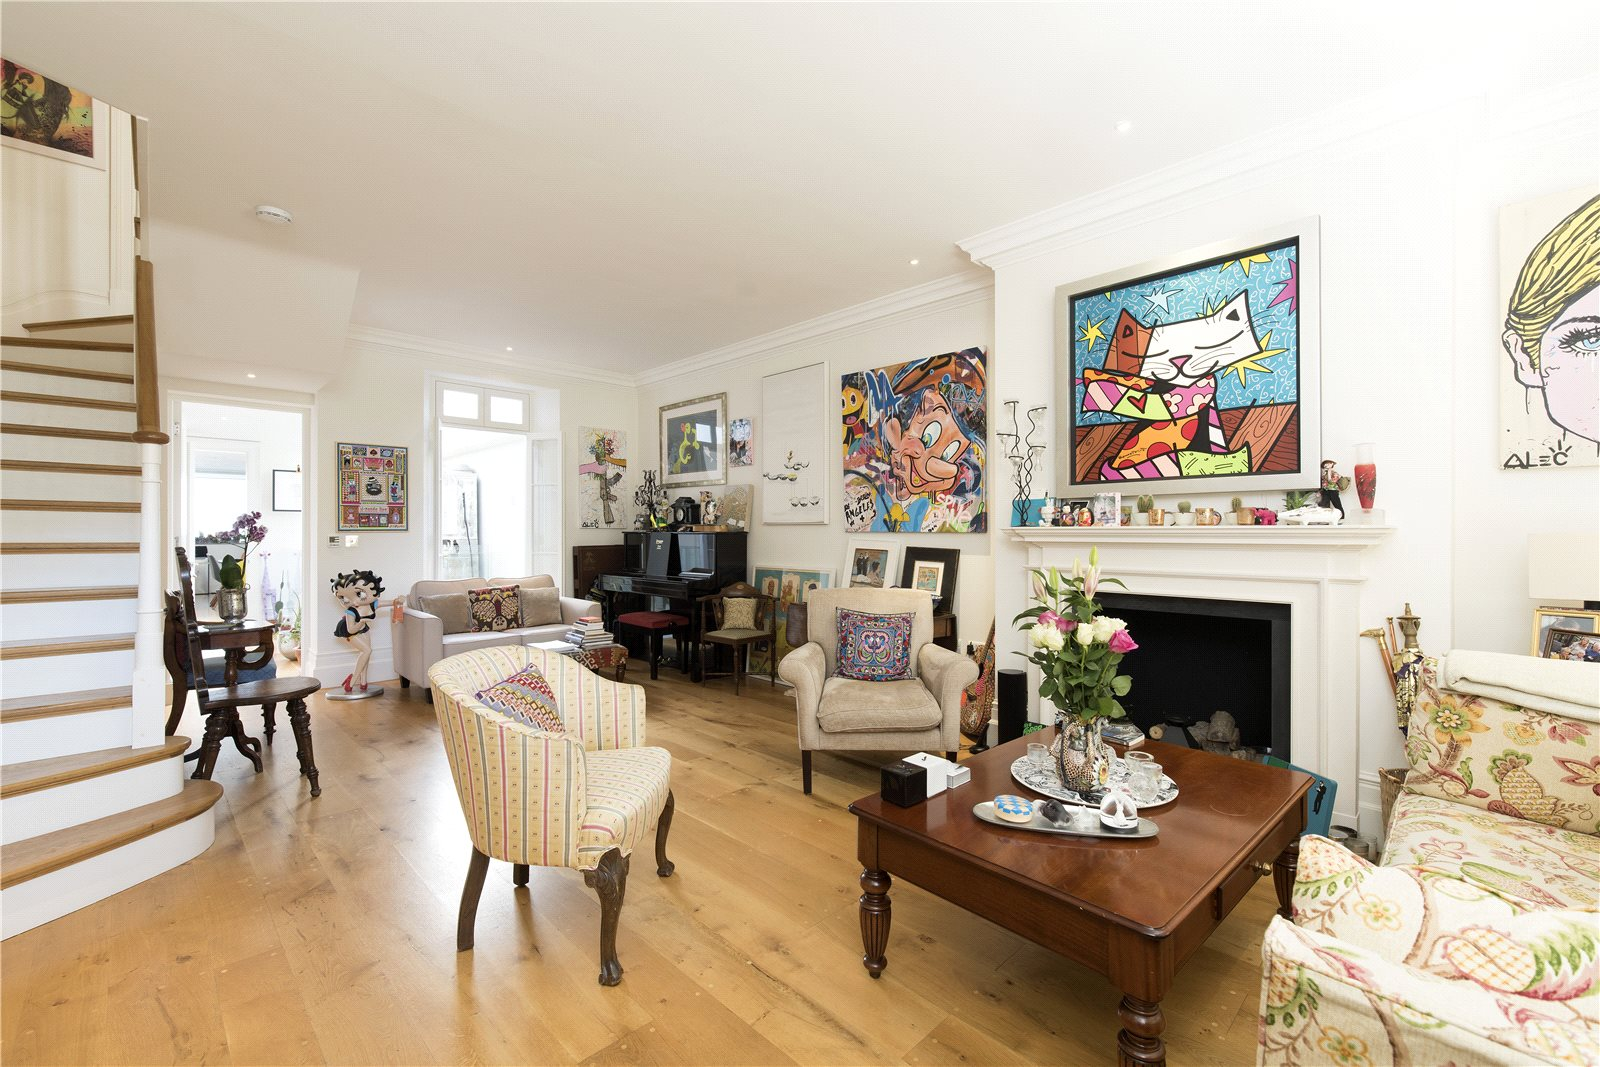 Single Family Home for Sale at Princedale Road, Holland Park, London, W11 Holland Park, London, England